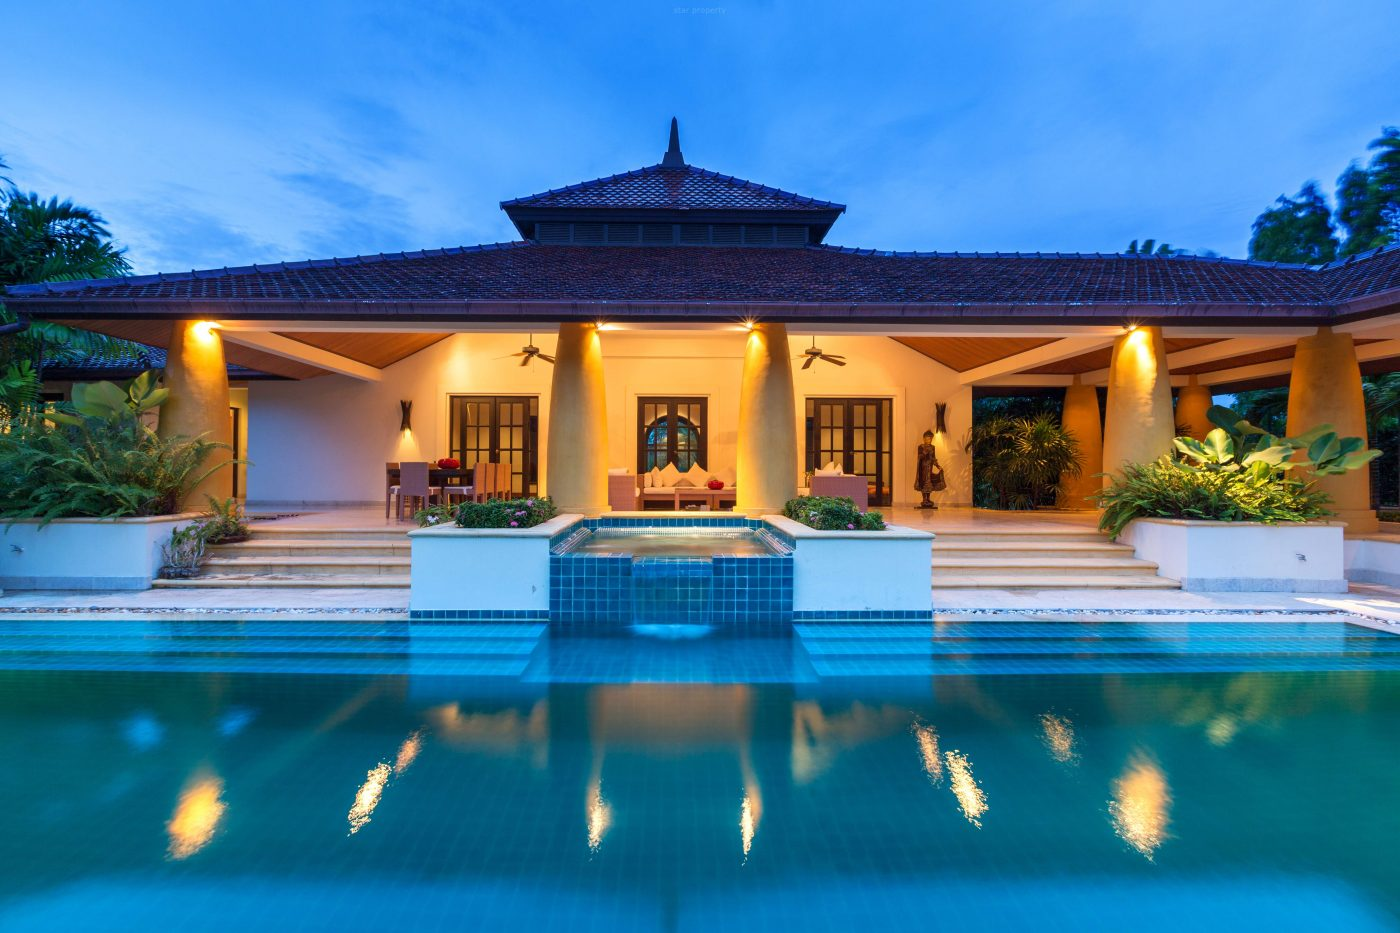 Luxury Bali Style House For Sale at Hua Hin District, Prachuap Khiri Khan, Thailand